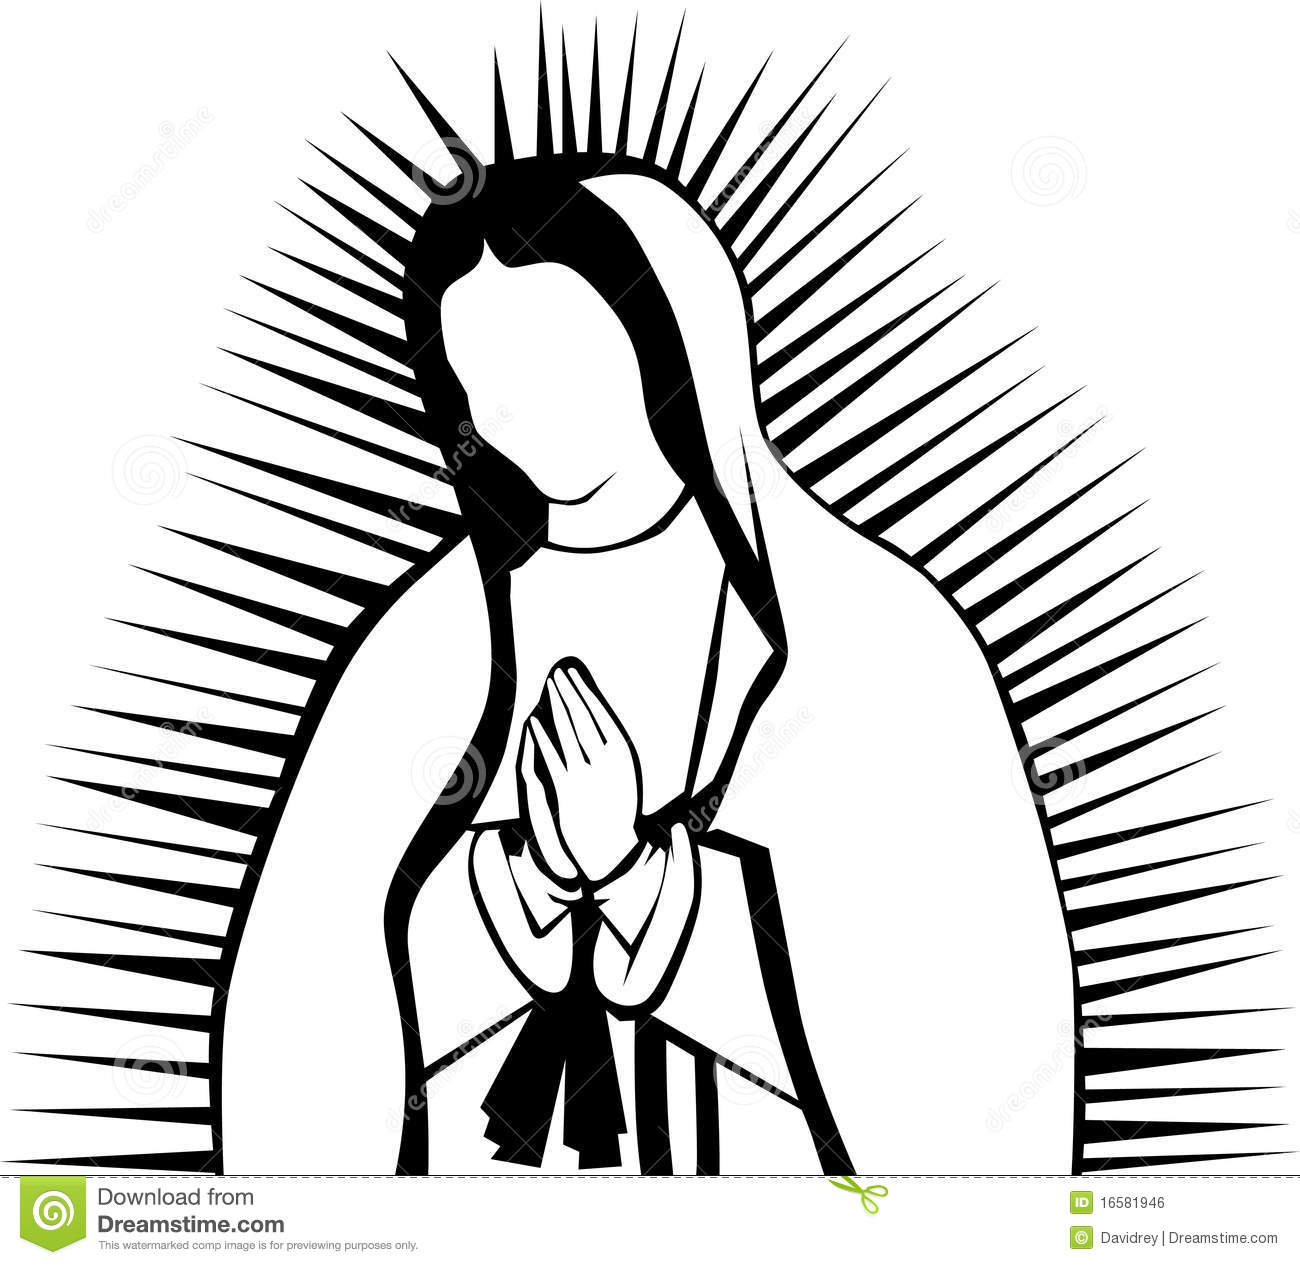 Black and white clipart illustration of a praying virgin of guadalupe.